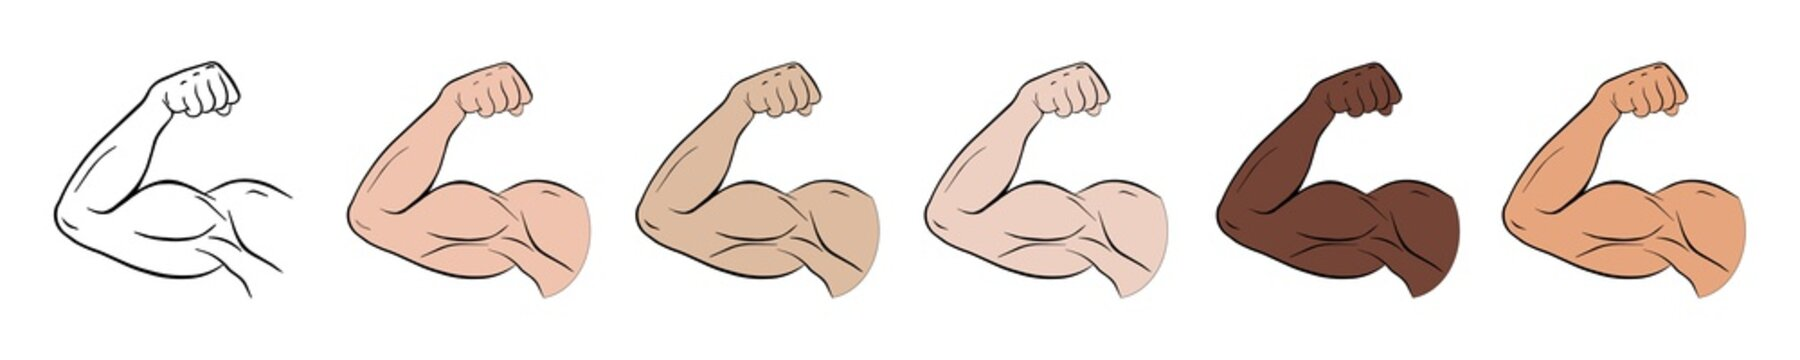 Biceps outline vector icon. Big bicep muscle. Isolated vector illustration icons set